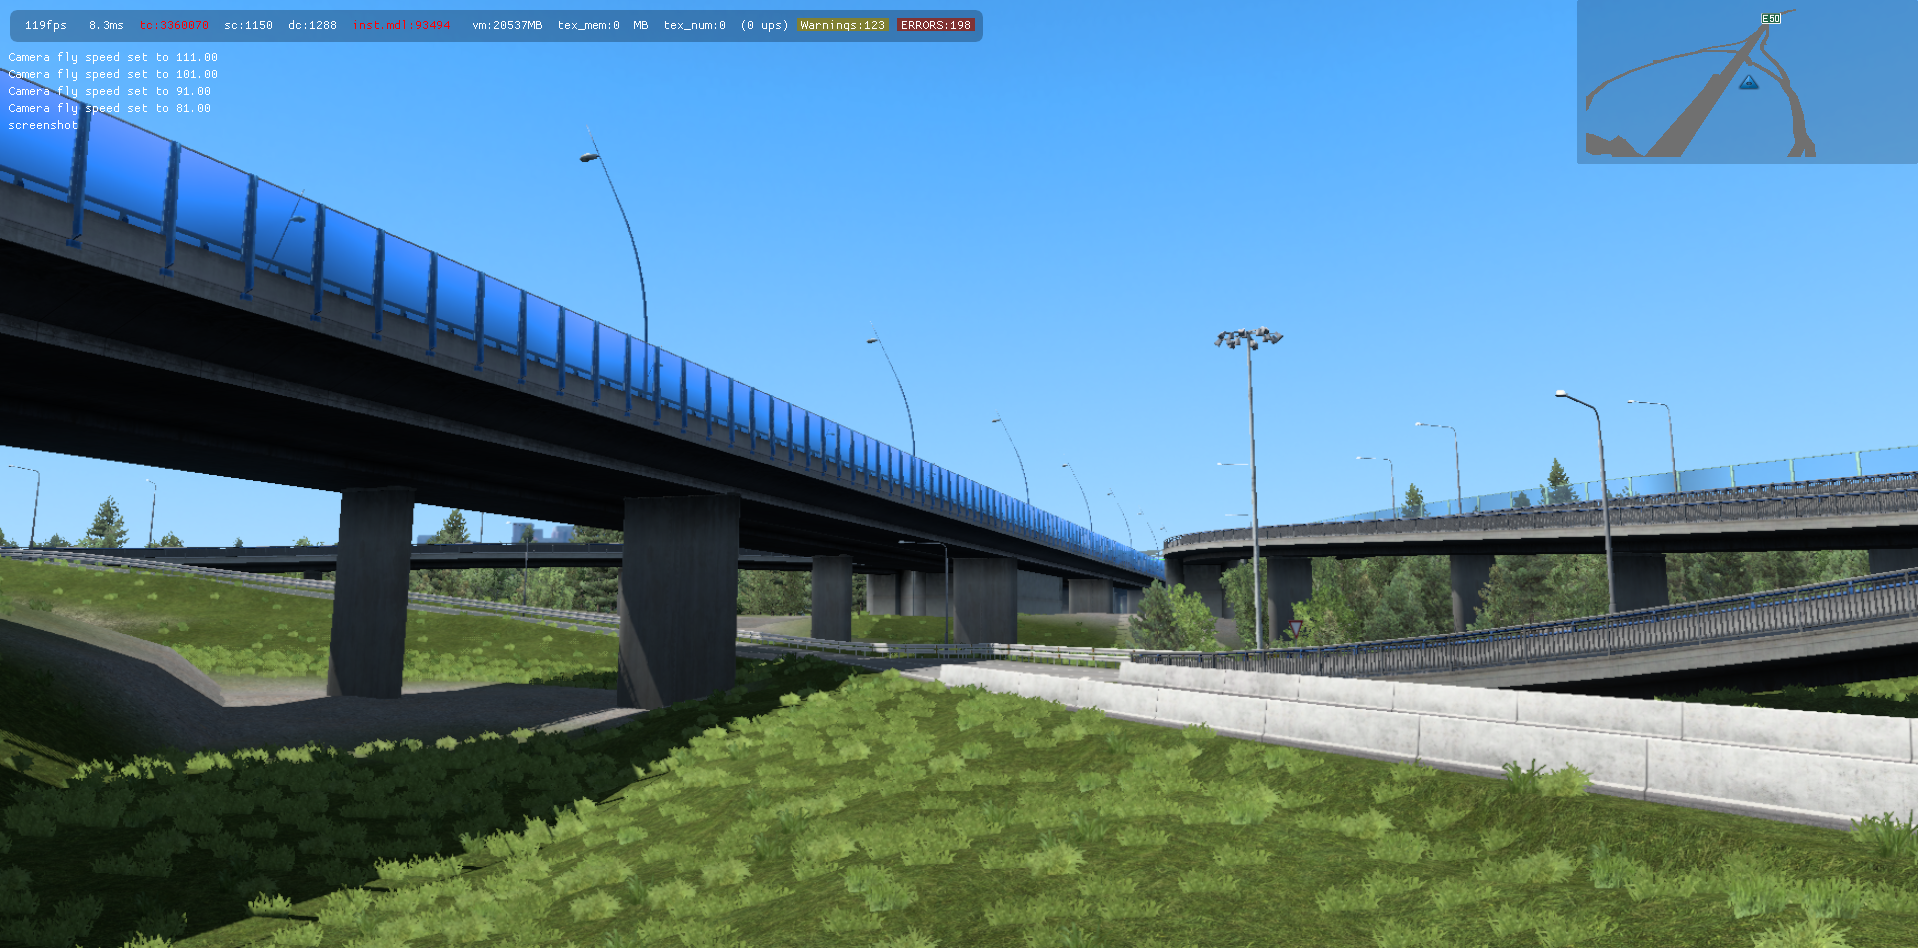 ets2_20210729_135103_00.png